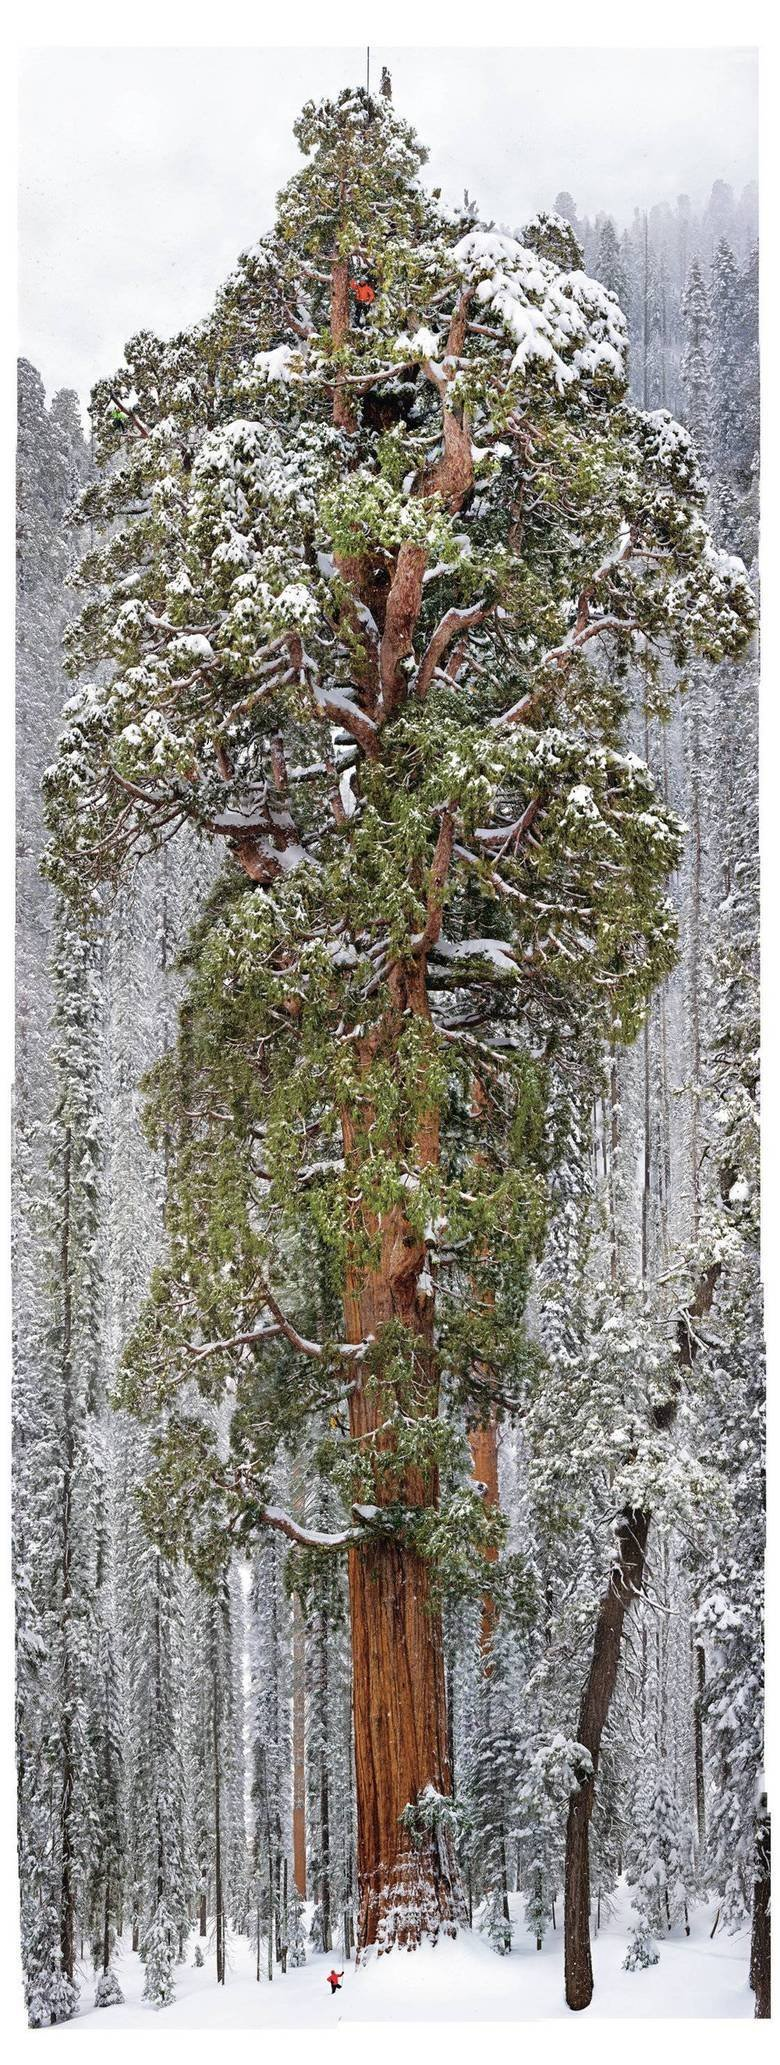 Nature can humble a man. 126 images combined to show the massiveness of a 3,200 year old tree in the Sequoia National Park. Still not as massive as my doe. Hell